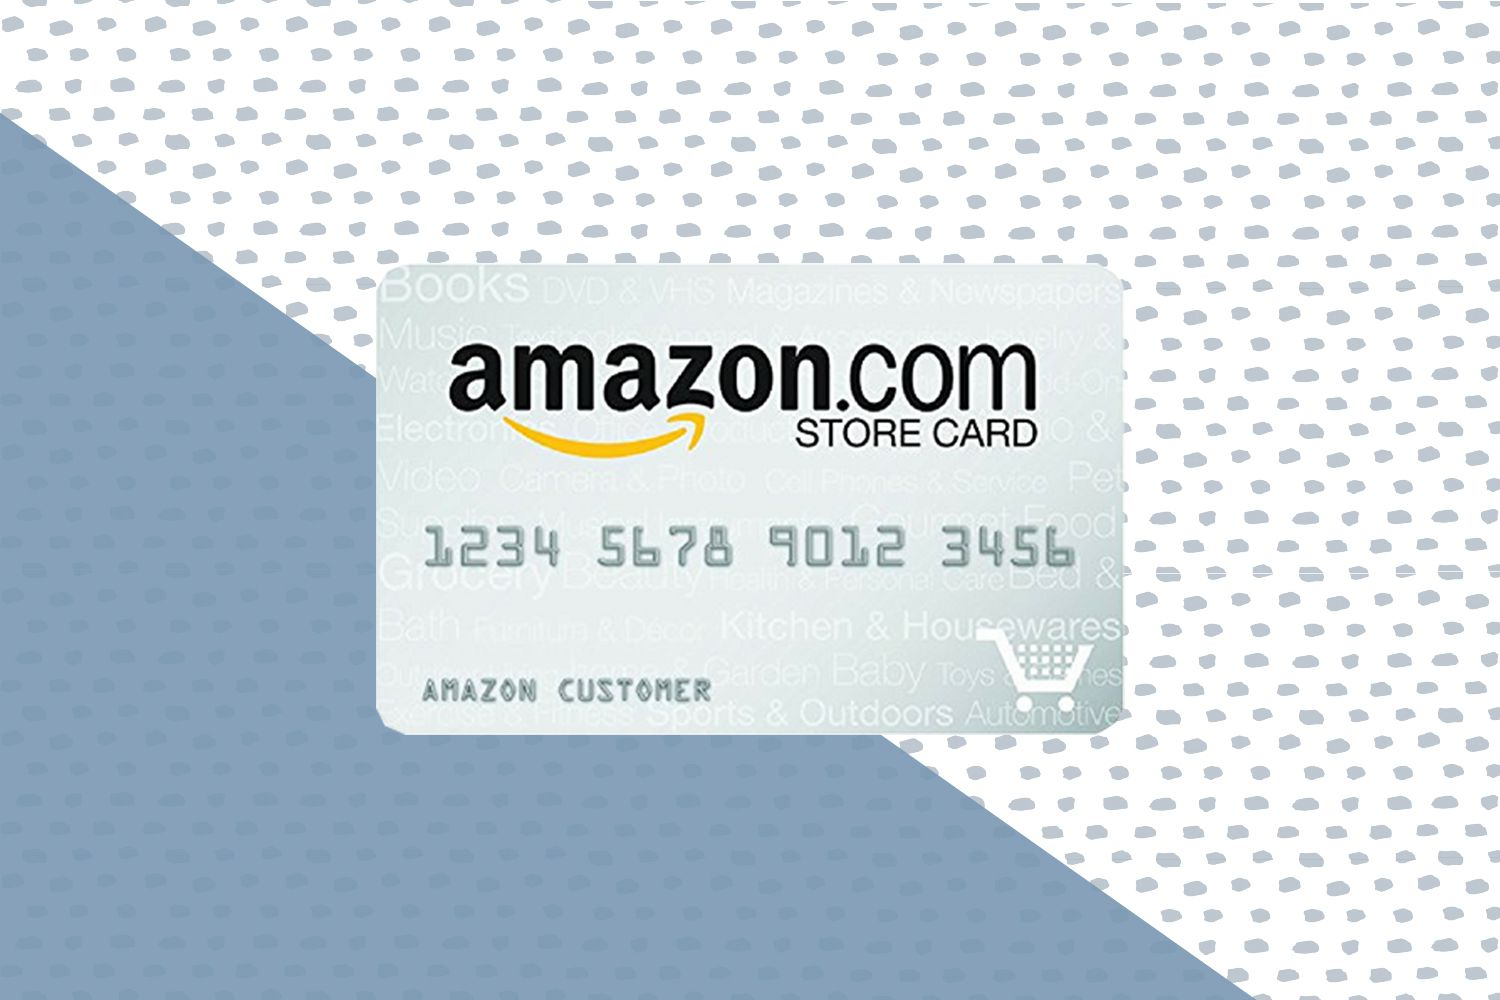 Amazon Store Card Review: Made for Avid Prime Shoppers